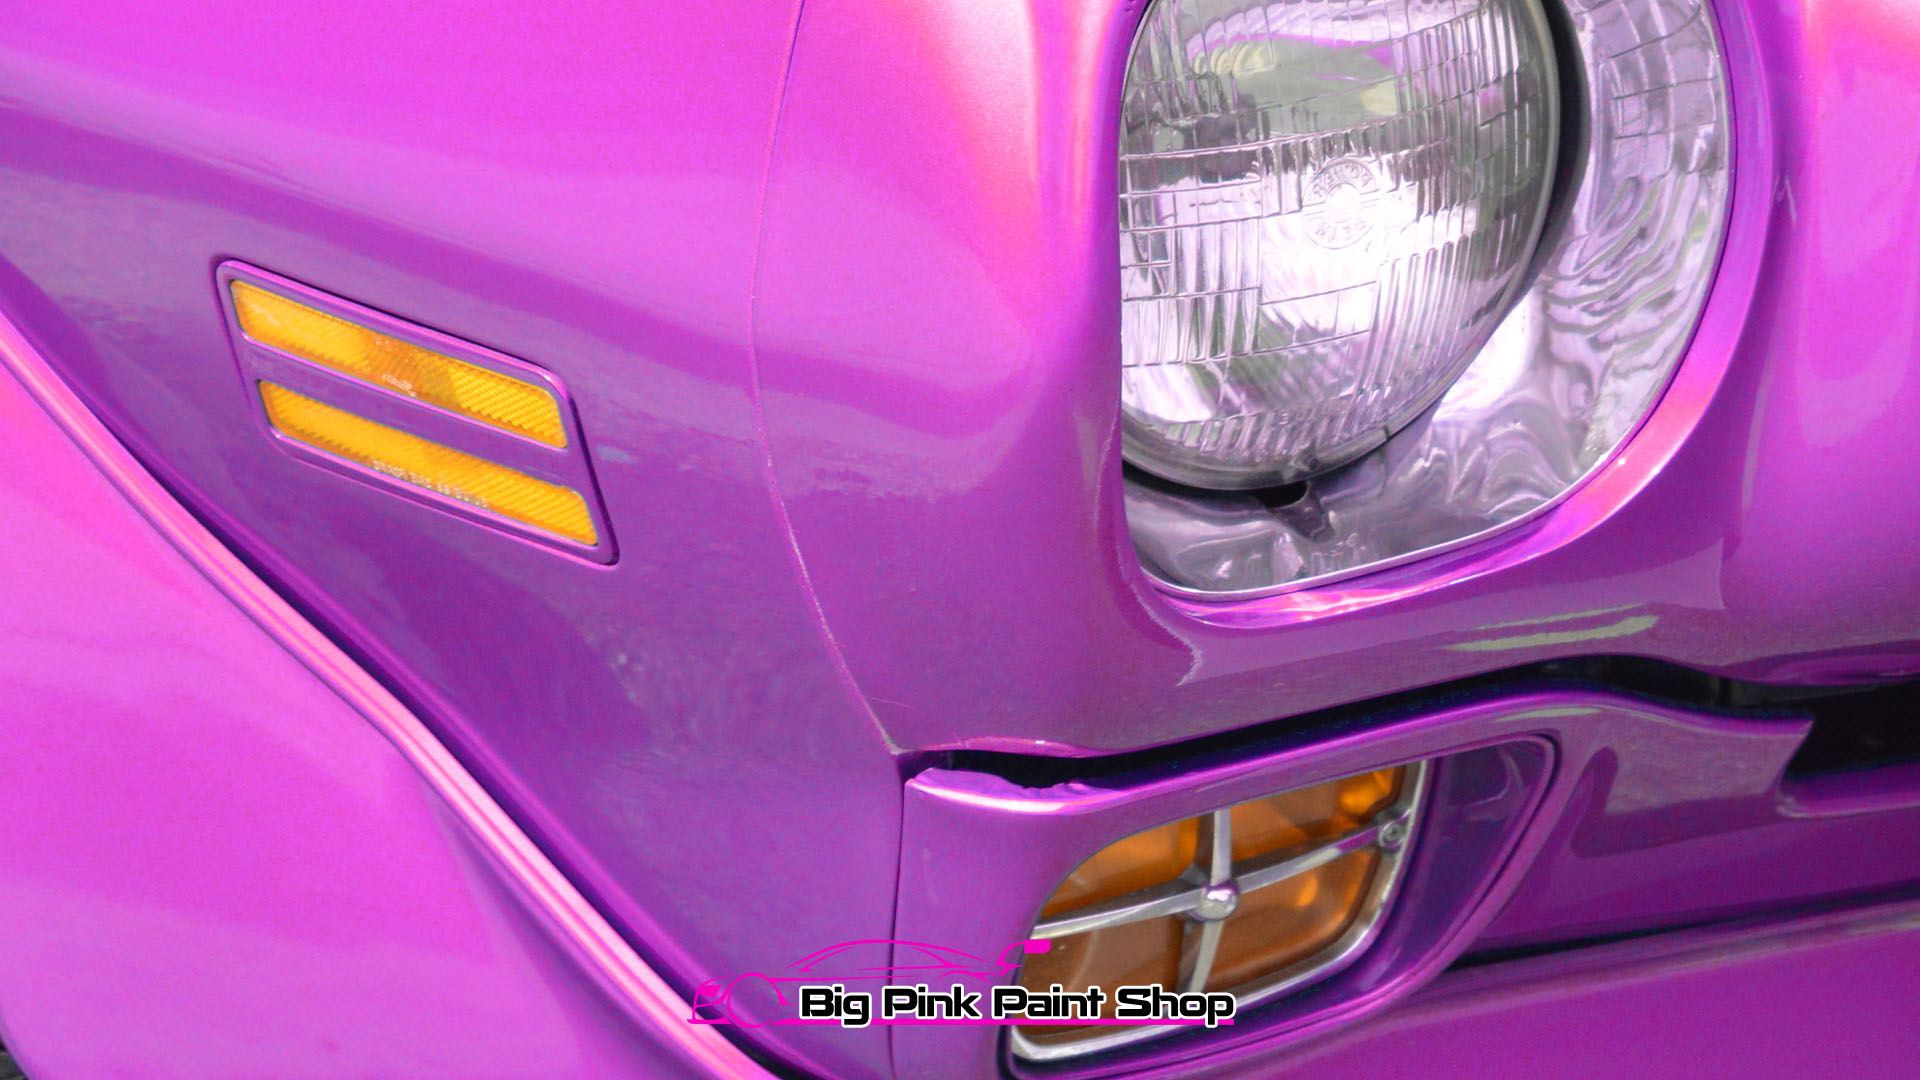 Scratch Repairs Algarve Portugal - The Big Pink Paint Shop Vehicle Scratch Repairs